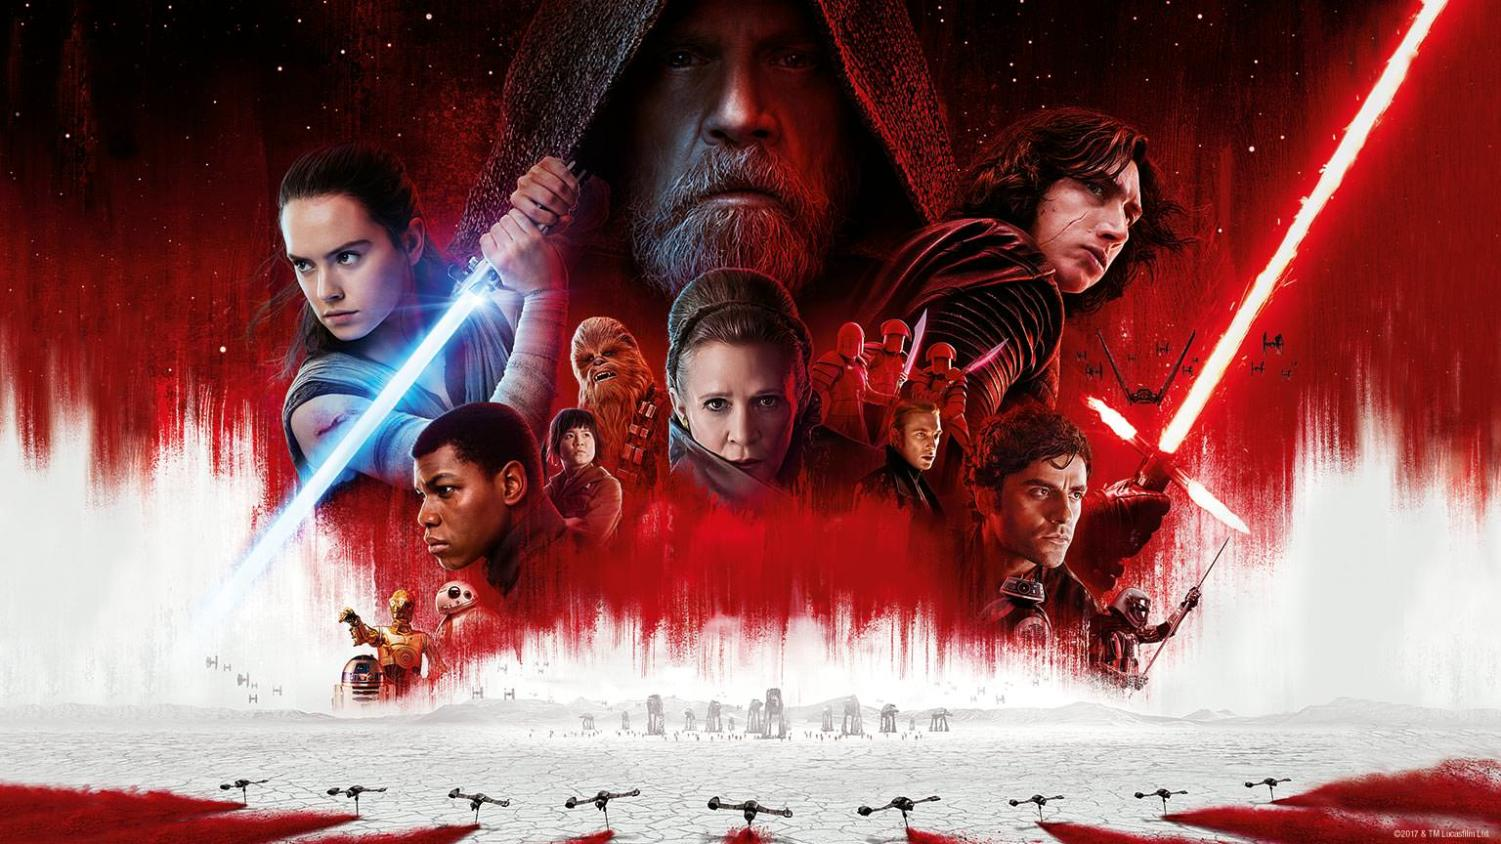 Star Wars: The Last Jedi is the latest installment in the Star Wars Franchise